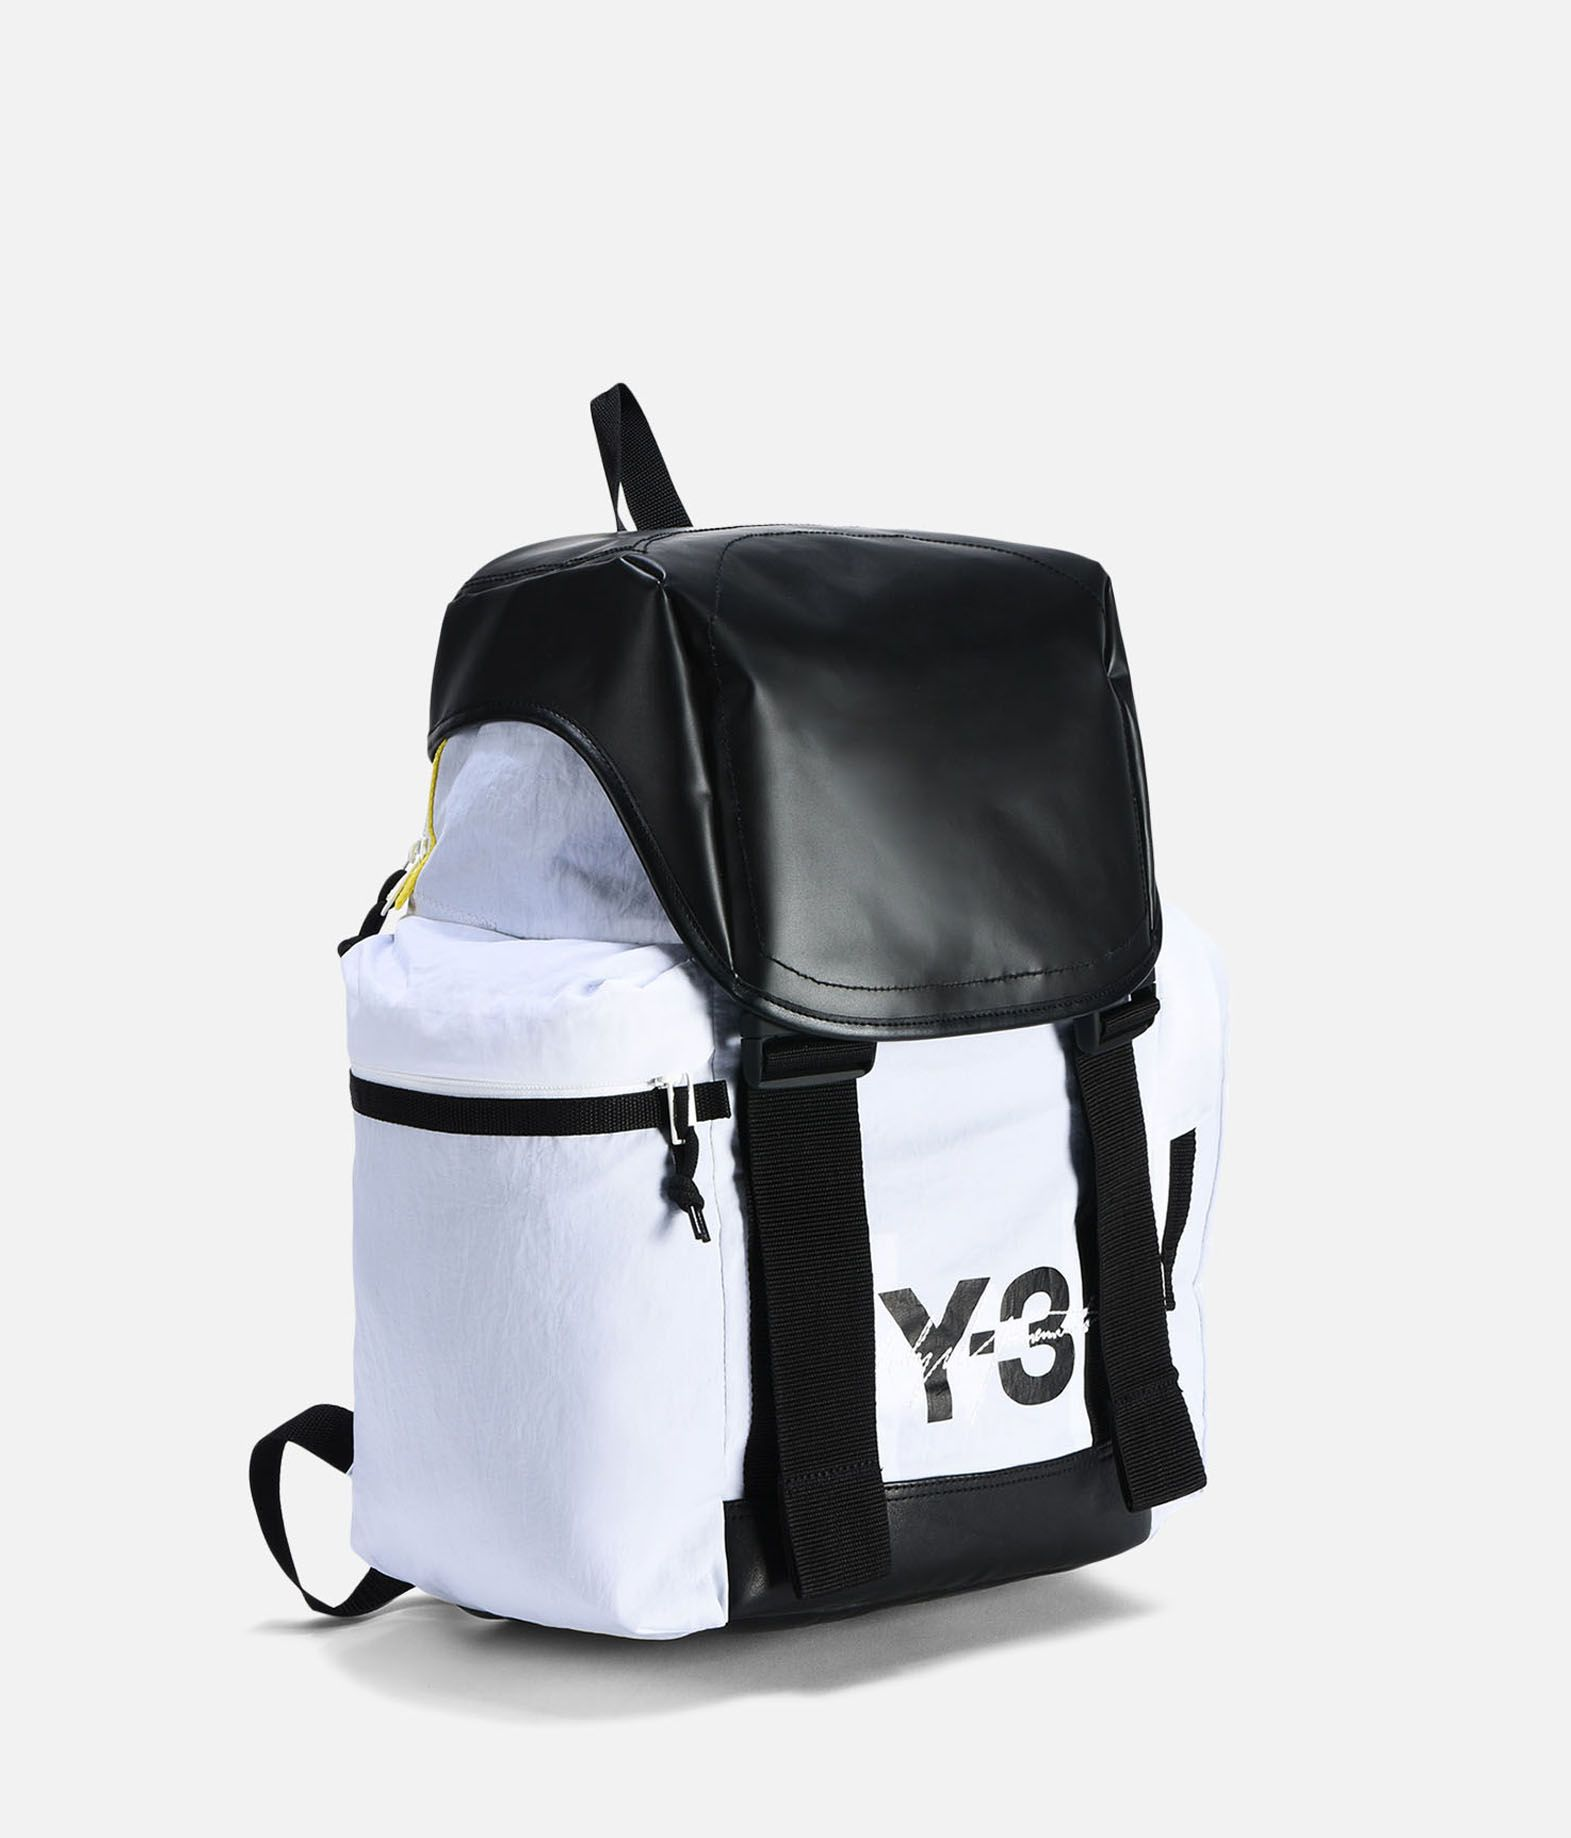 Y-3 Y-3 Mobility Bag Backpack E r